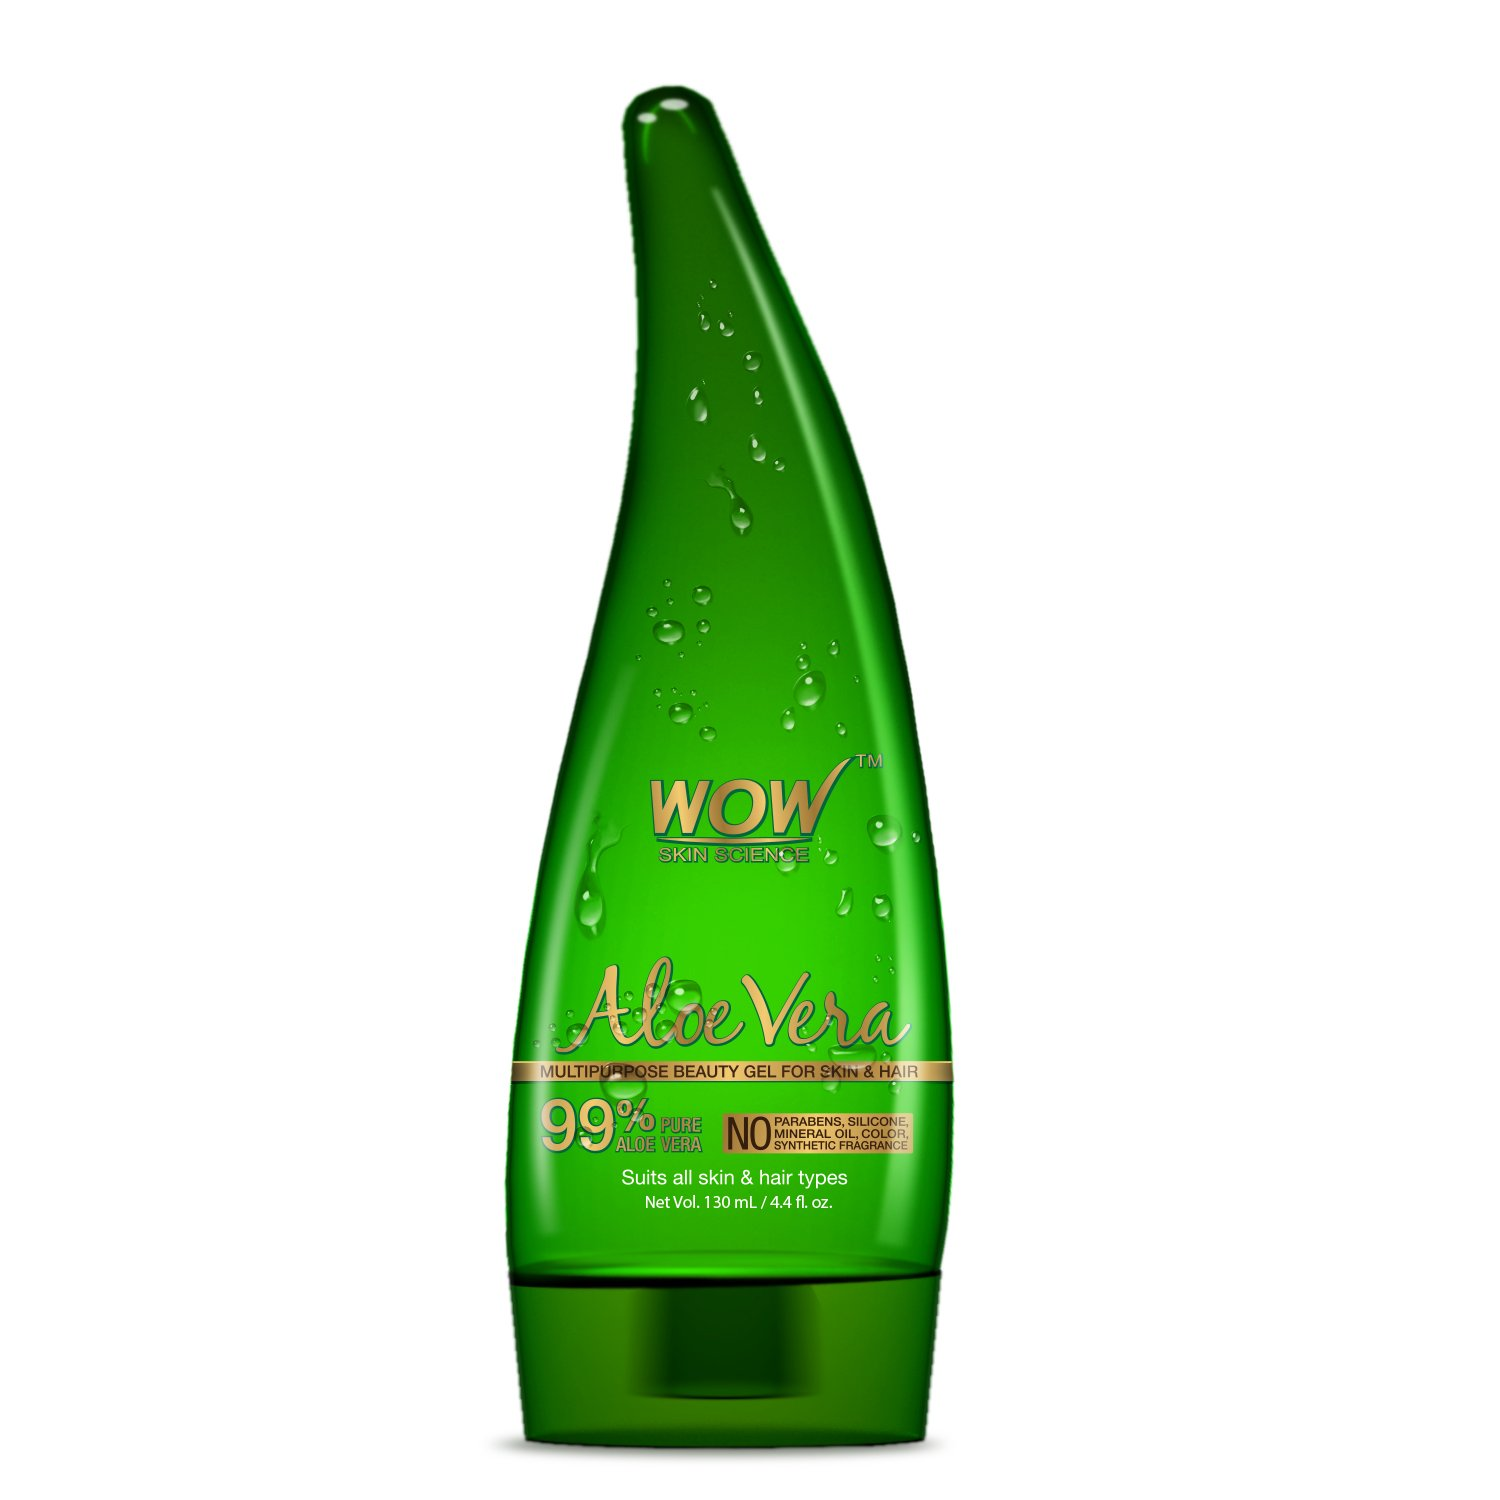 WOW Aloe Vera Multipurpose Beauty Gel for Skin and Hair, 130ml product image